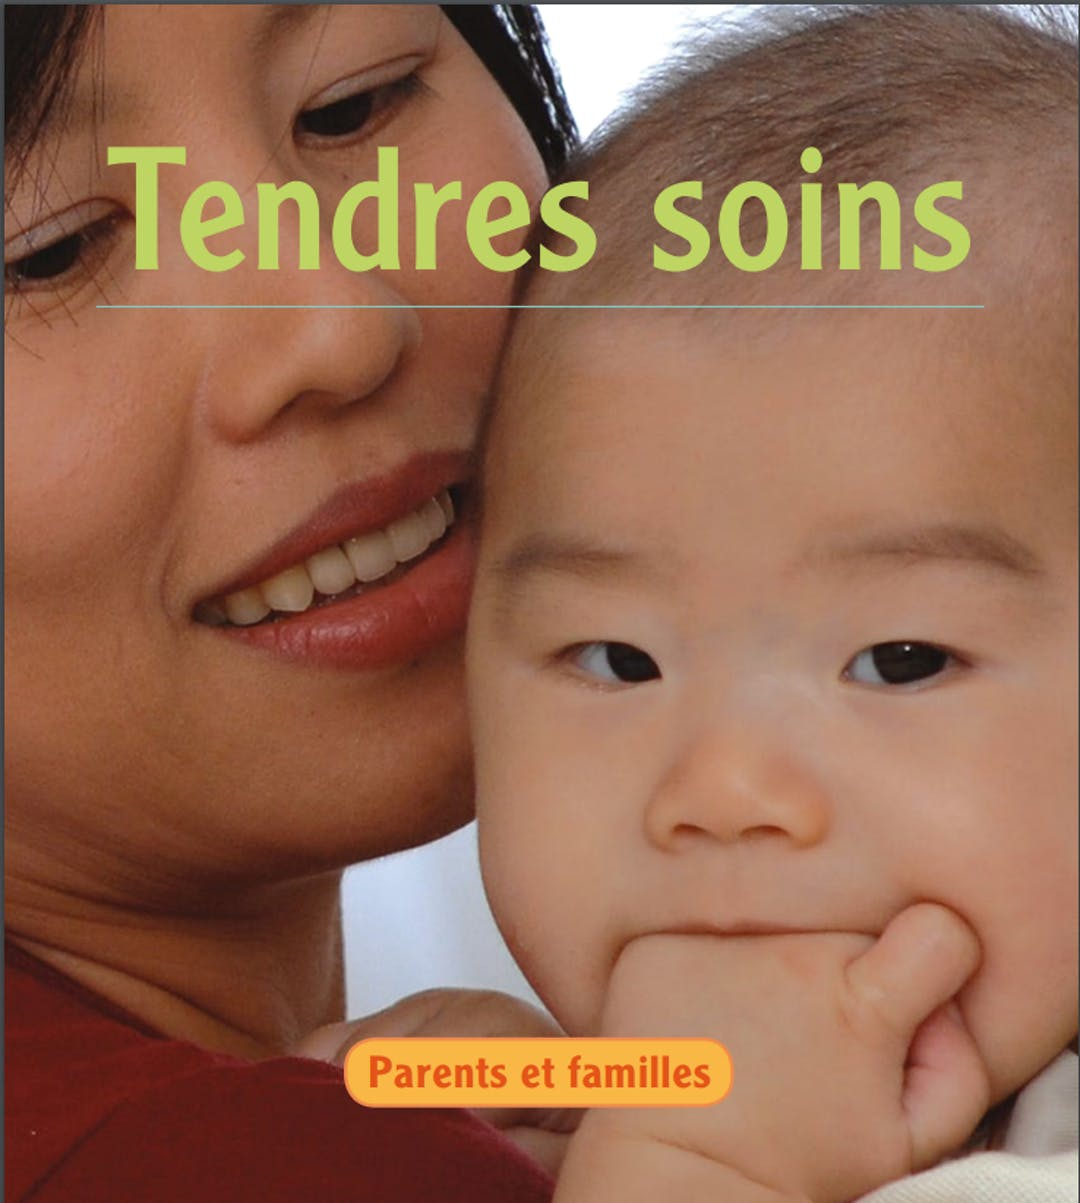 Tendres soins